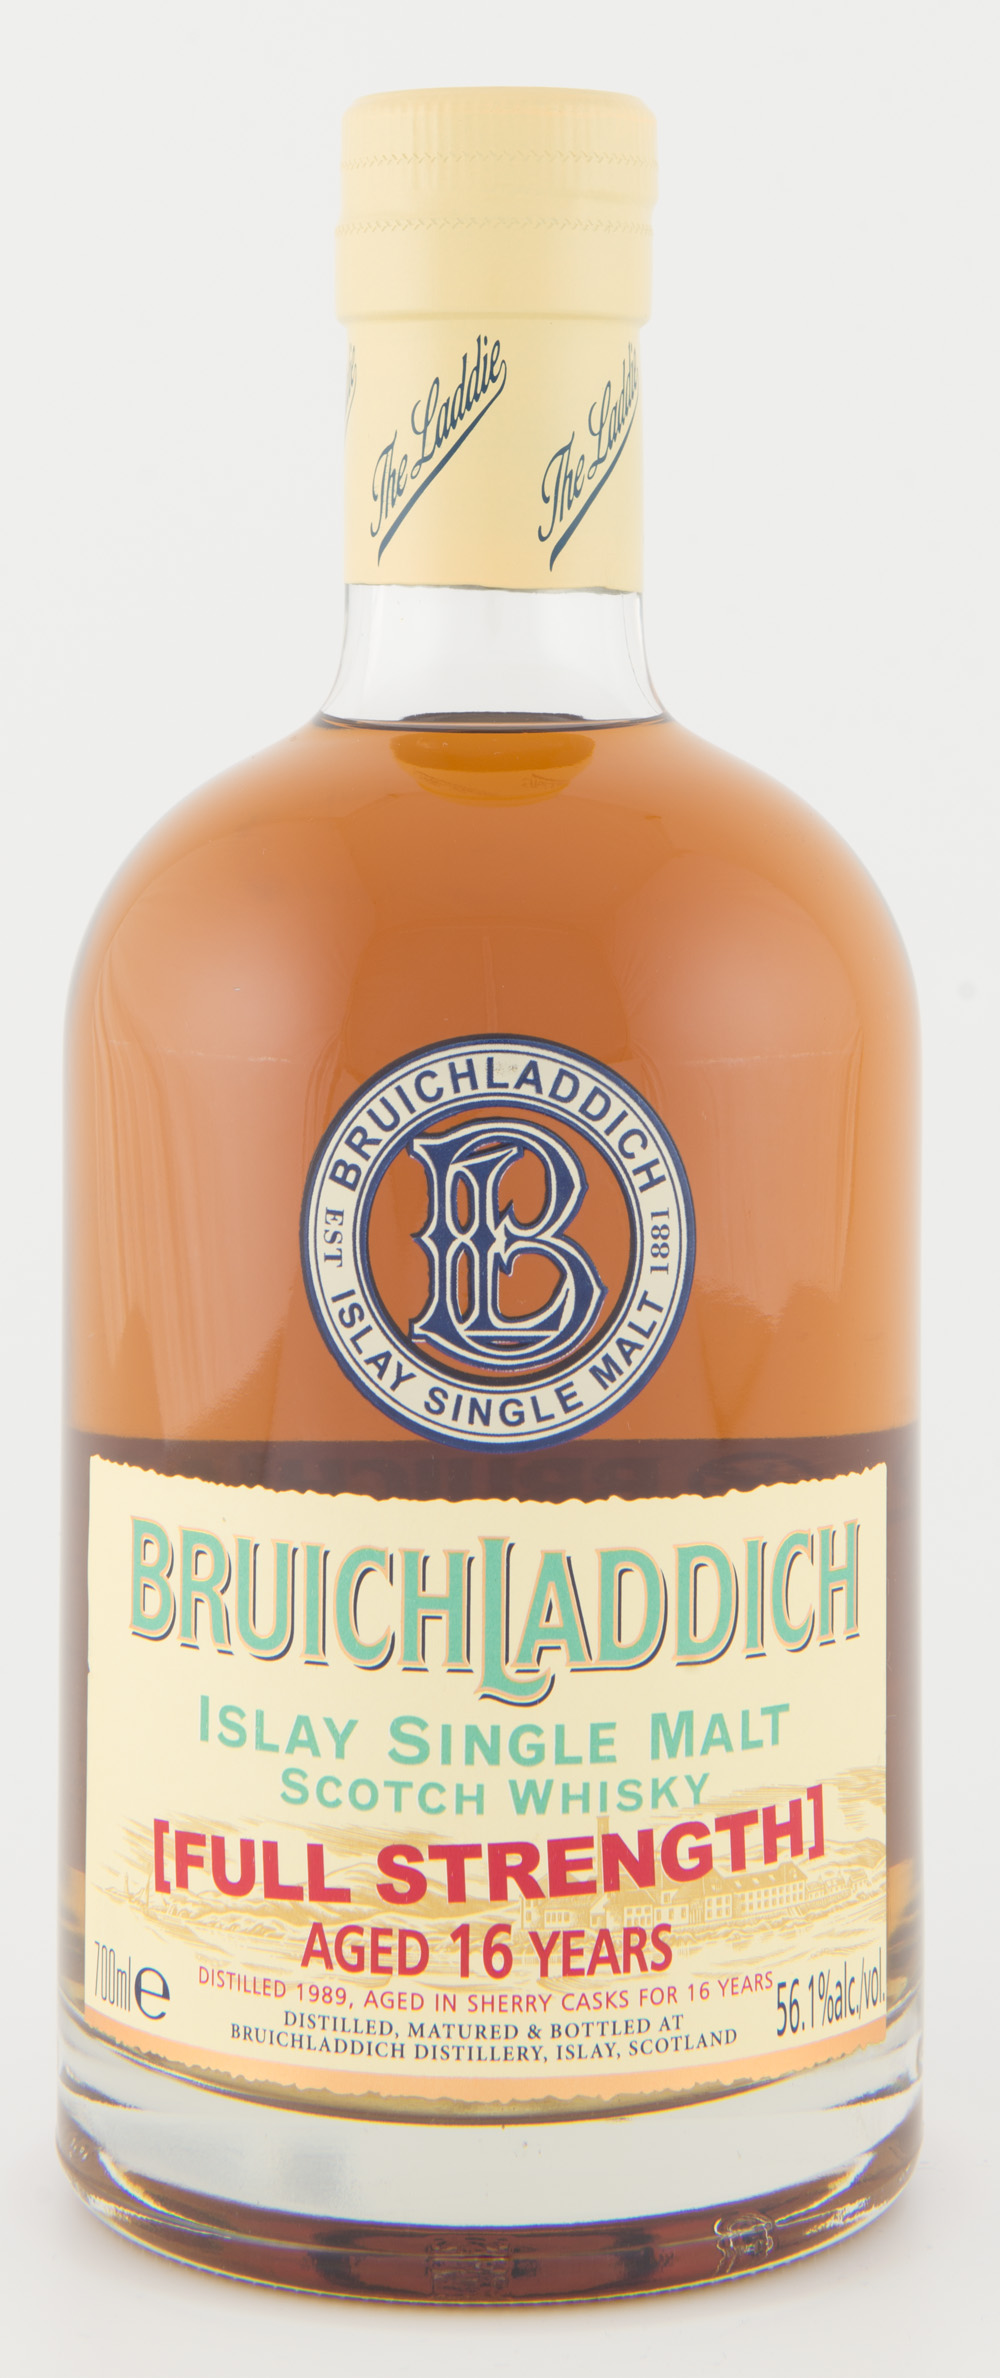 Billede: DSC_3571 Bruichladdich Full Strength 1989 - 16 years.jpg